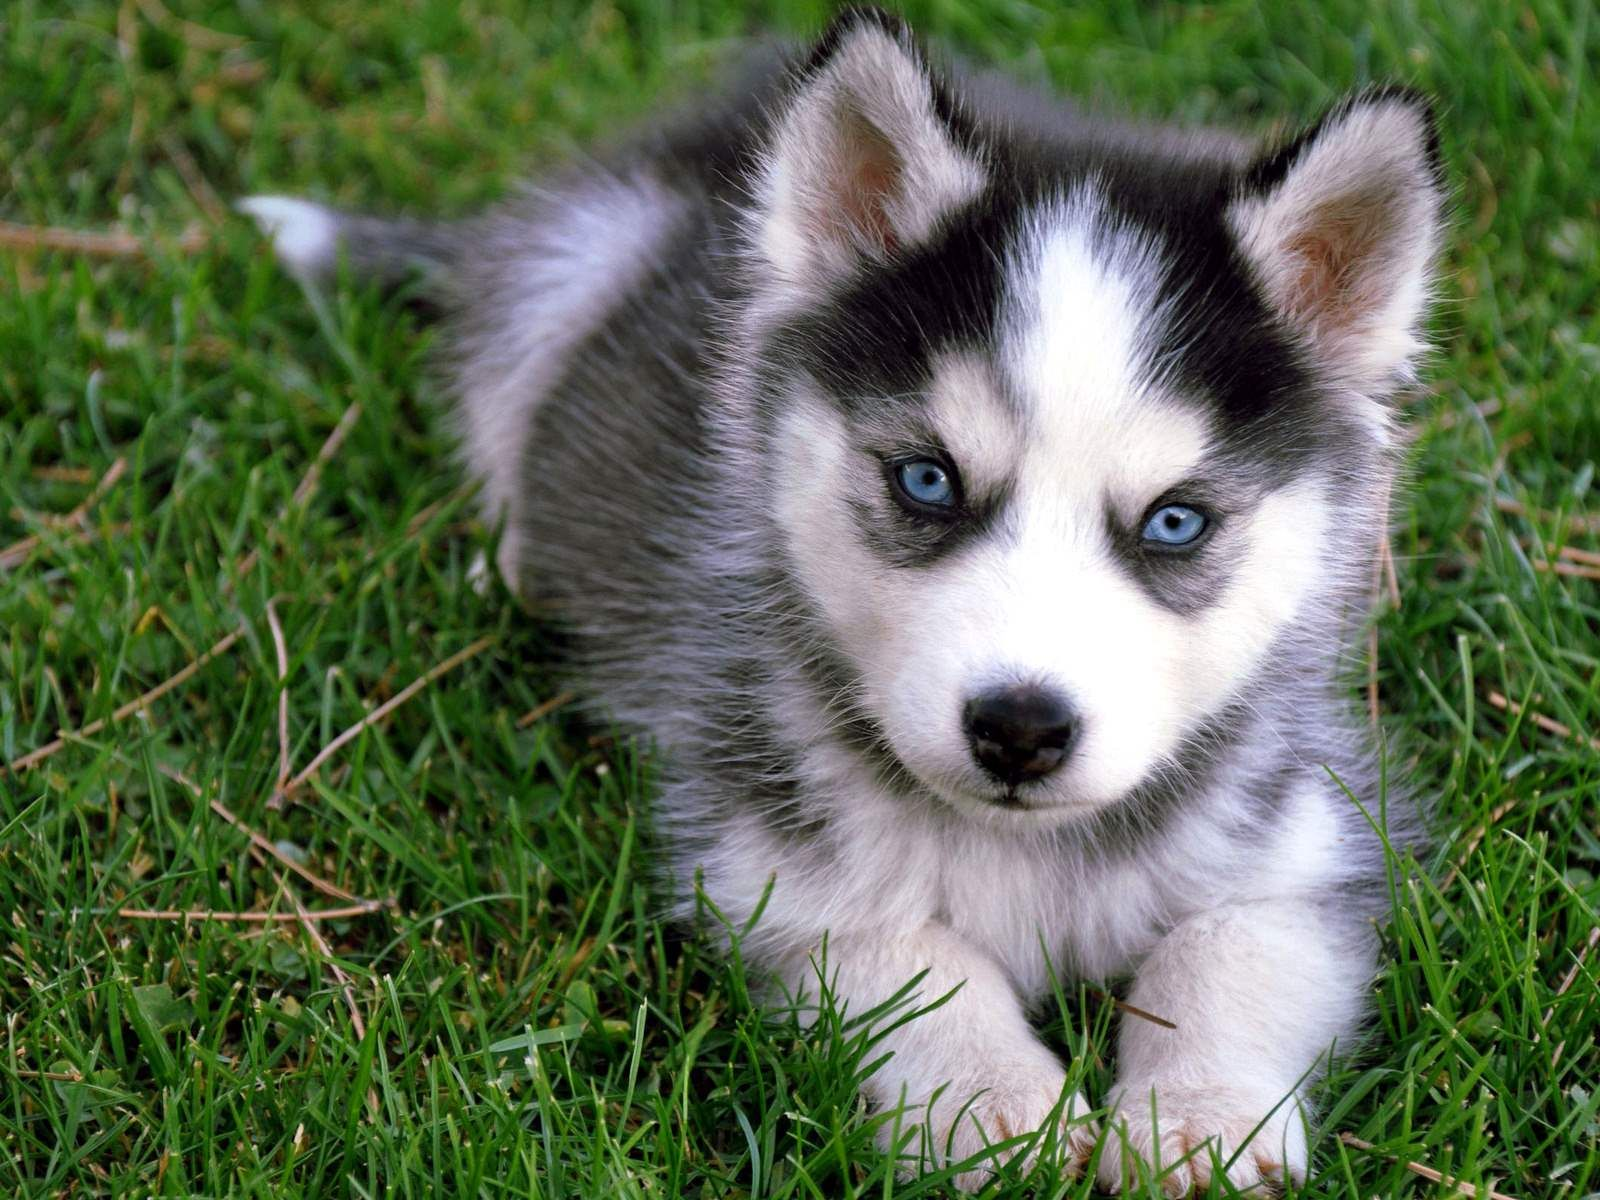 Cute Husky Puppies Cute Siberian Husky Puppy Sitting On Grass